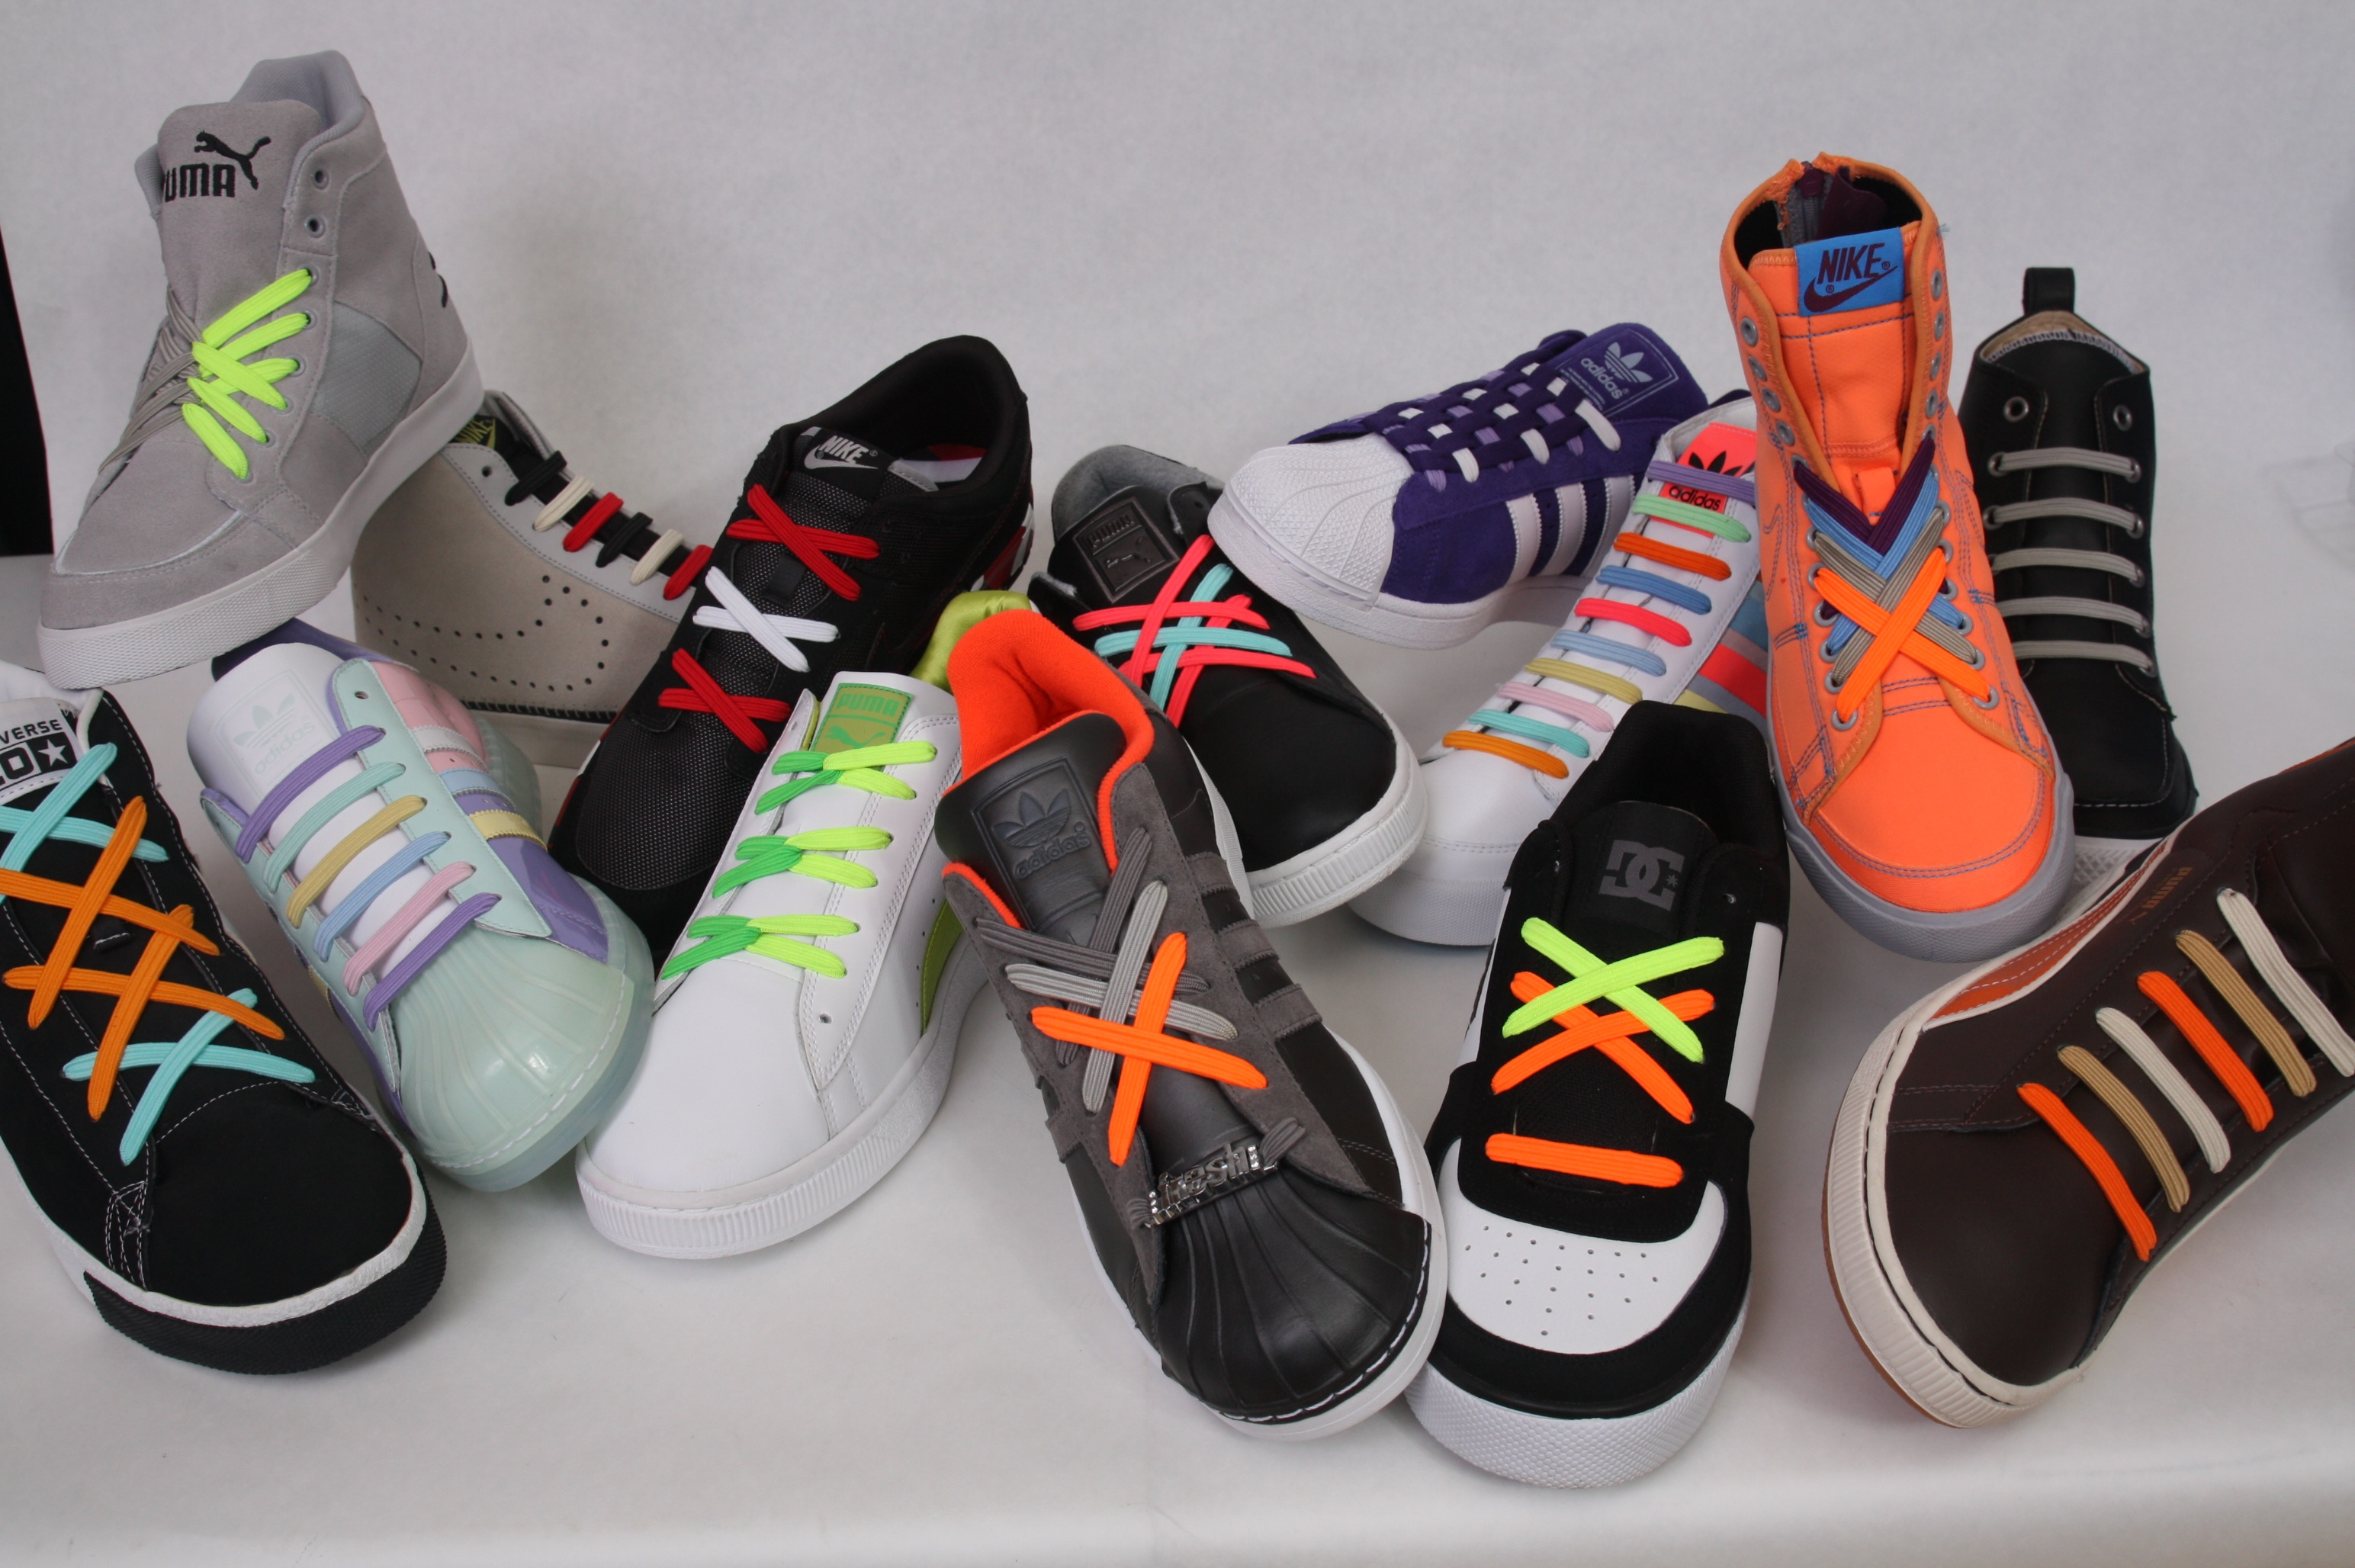 Classic U-Lace Customizing Lacing System Review & Giveaway ...